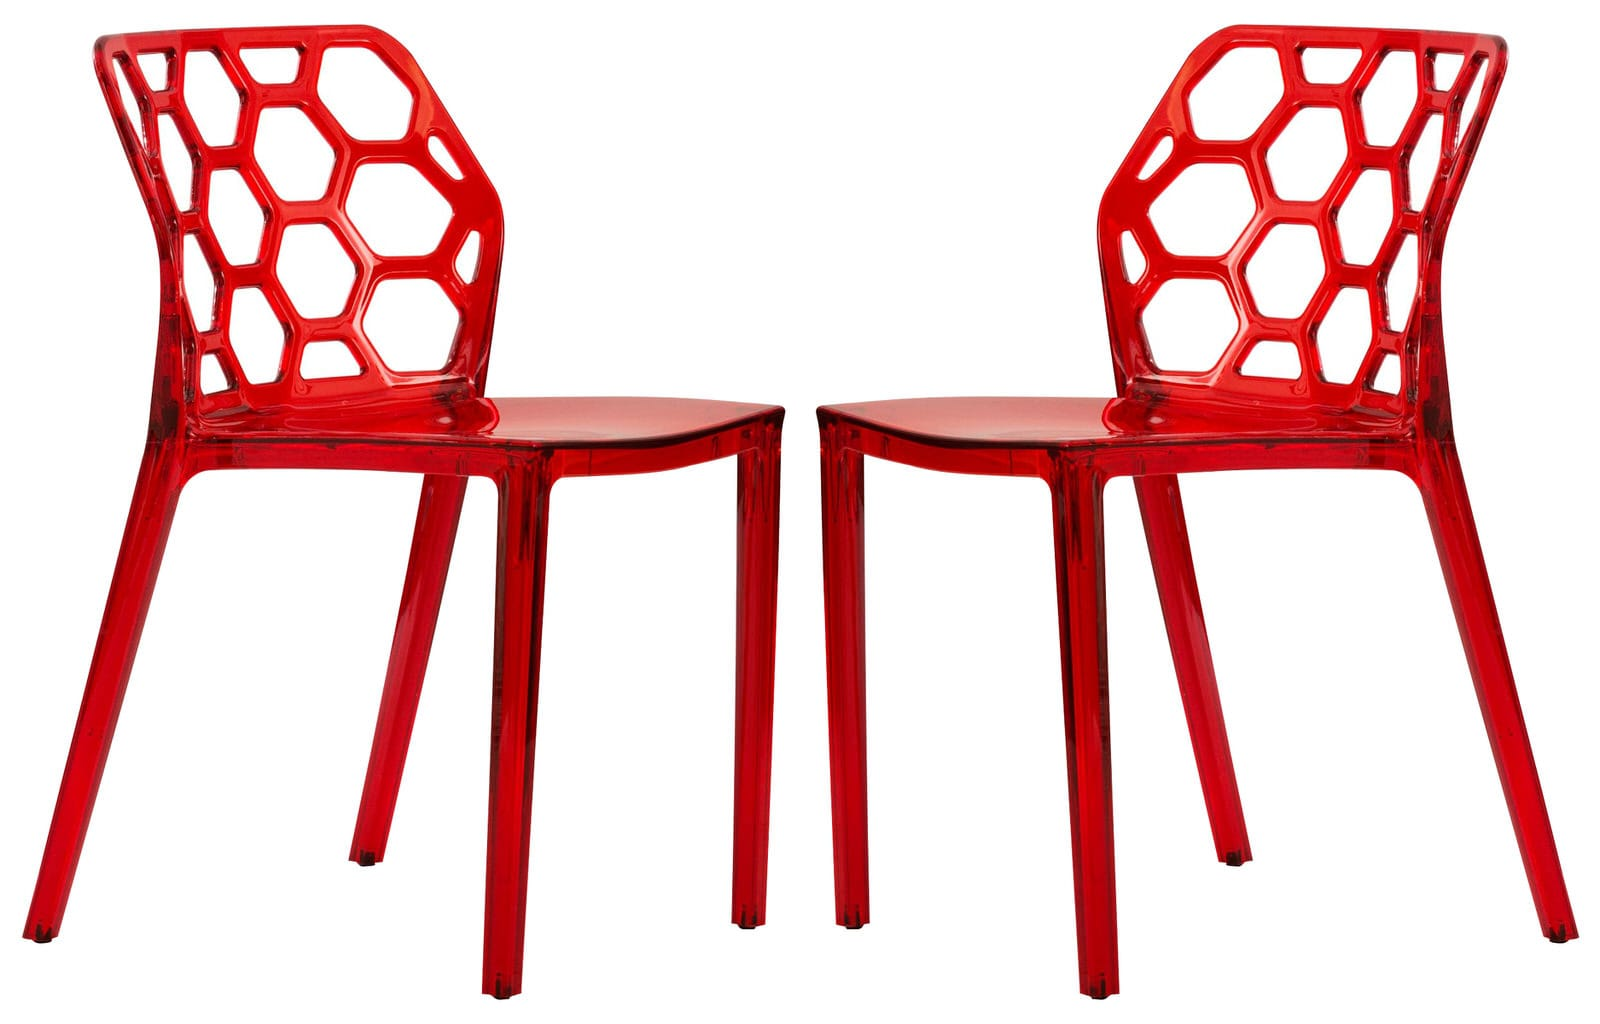 Cool Dynamic Modern Transparent Red Dining Chair Set Of 2 By Leisuremod Pabps2019 Chair Design Images Pabps2019Com